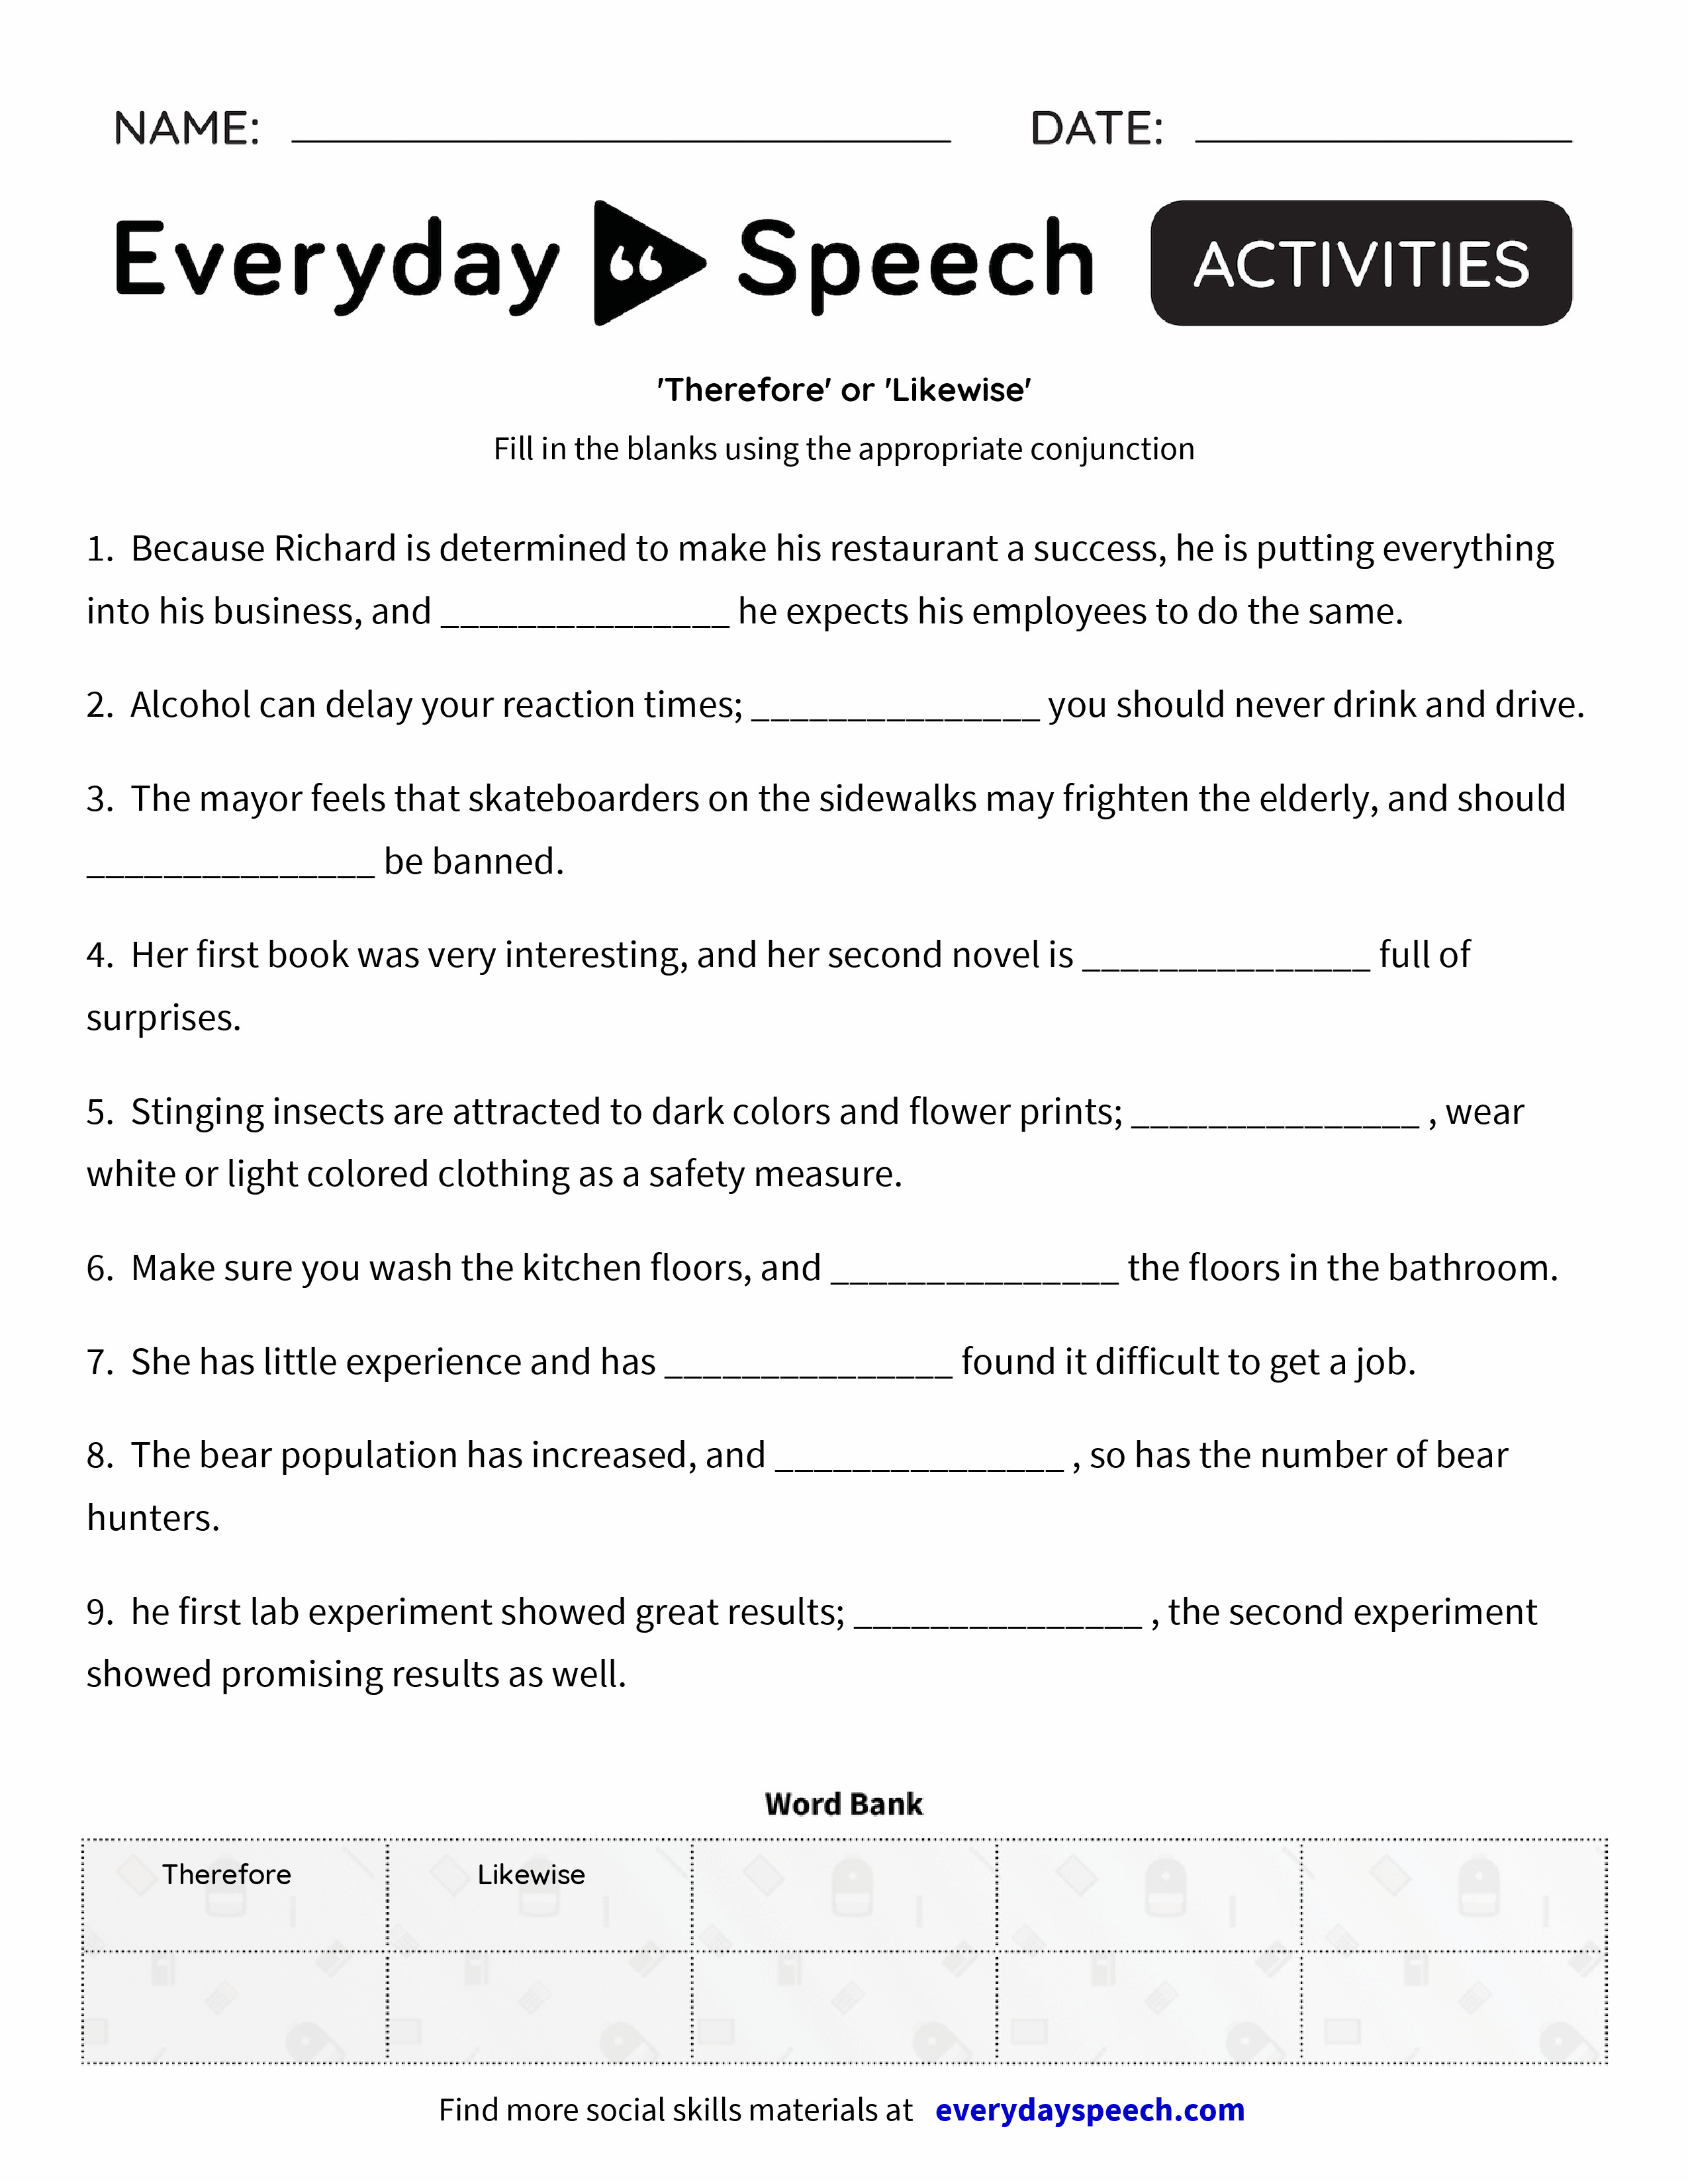 worksheet House On Mango Street Worksheets 602350439876 ordering decimals on a number line worksheet house mango street worksheets pdf therefore or likewise everyday speech equation word problems with